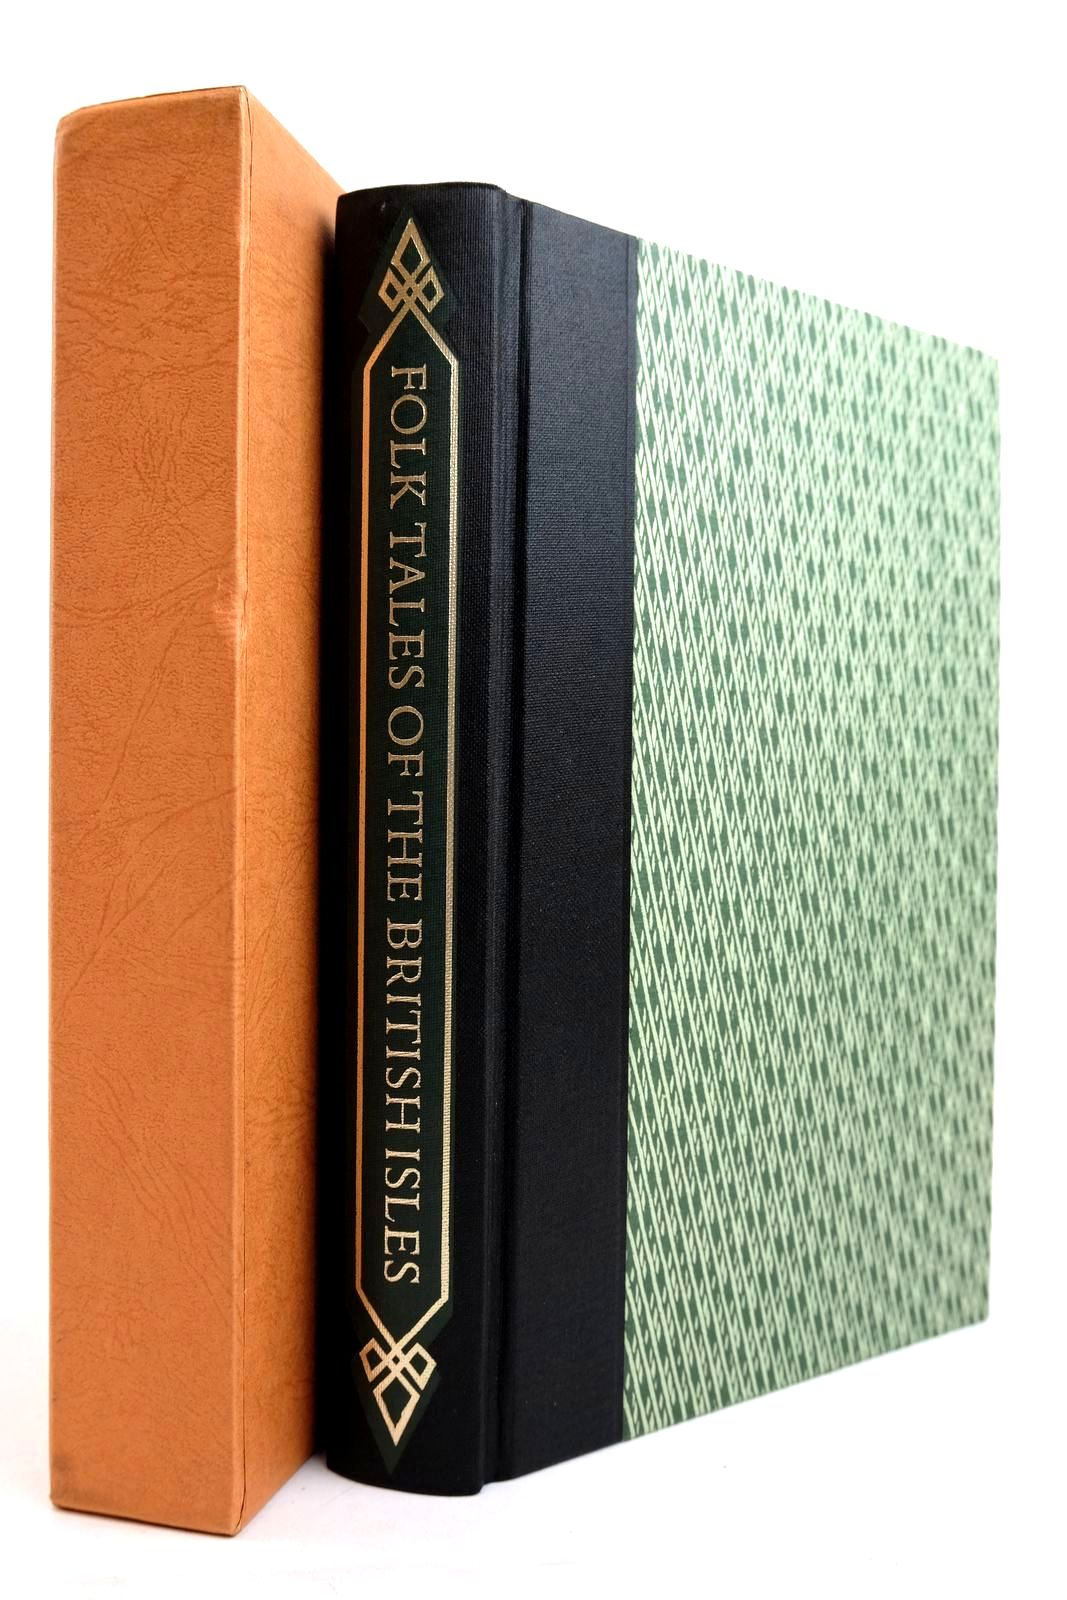 Photo of FOLK TALES OF THE BRITISH ISLES written by Crossley-Holland, Kevin illustrated by Firmin, Hannah published by Folio Society (STOCK CODE: 2134362)  for sale by Stella & Rose's Books